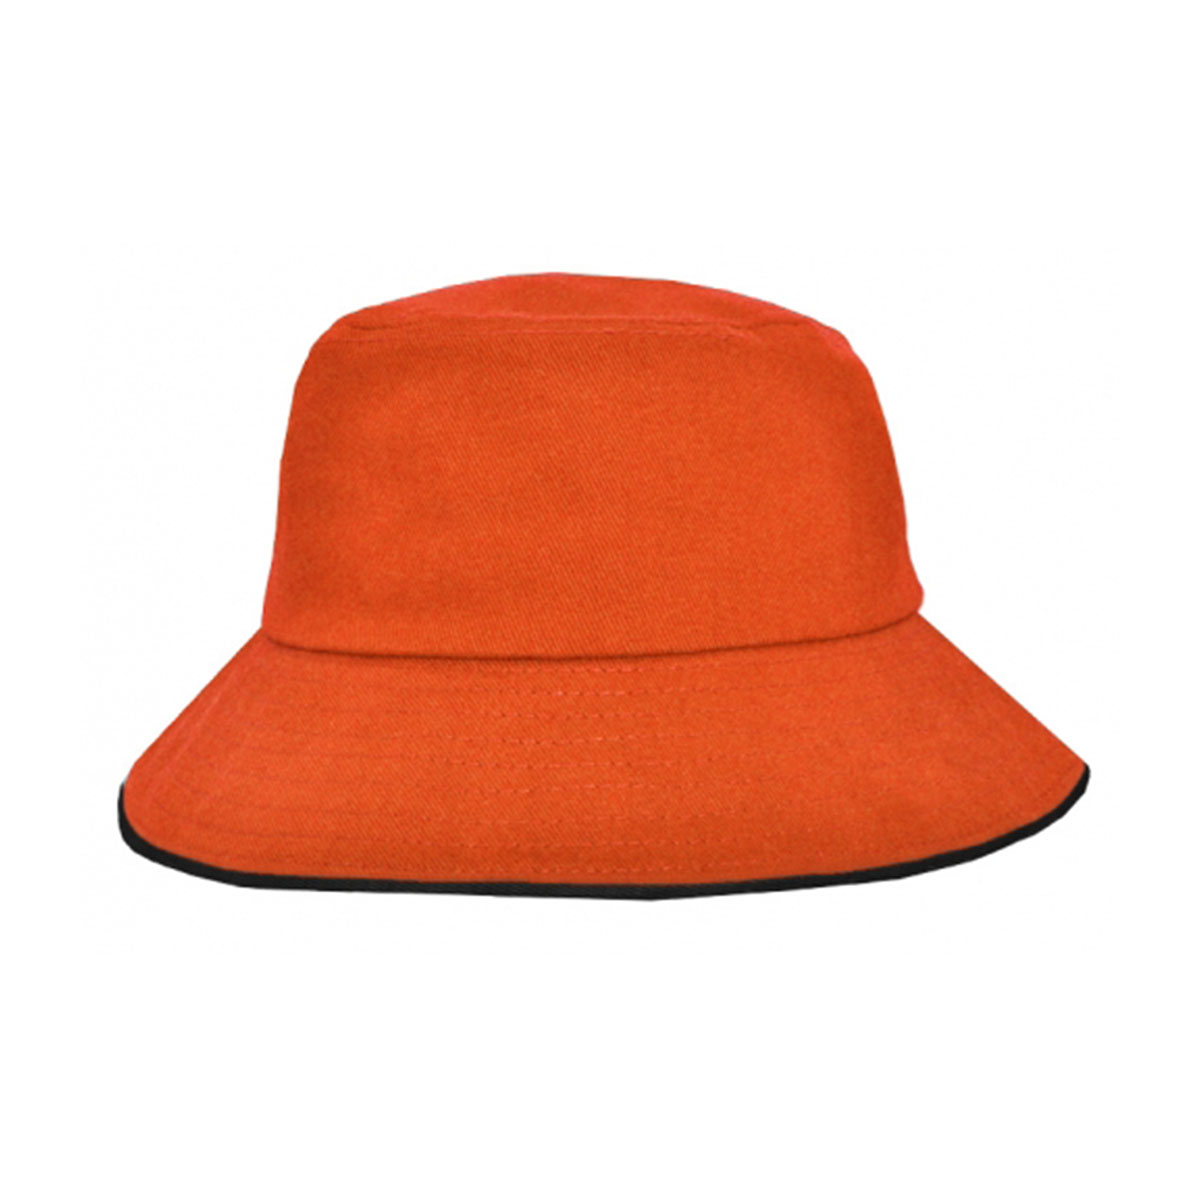 Bucket Hat Sandwich Design-Ochre / Black